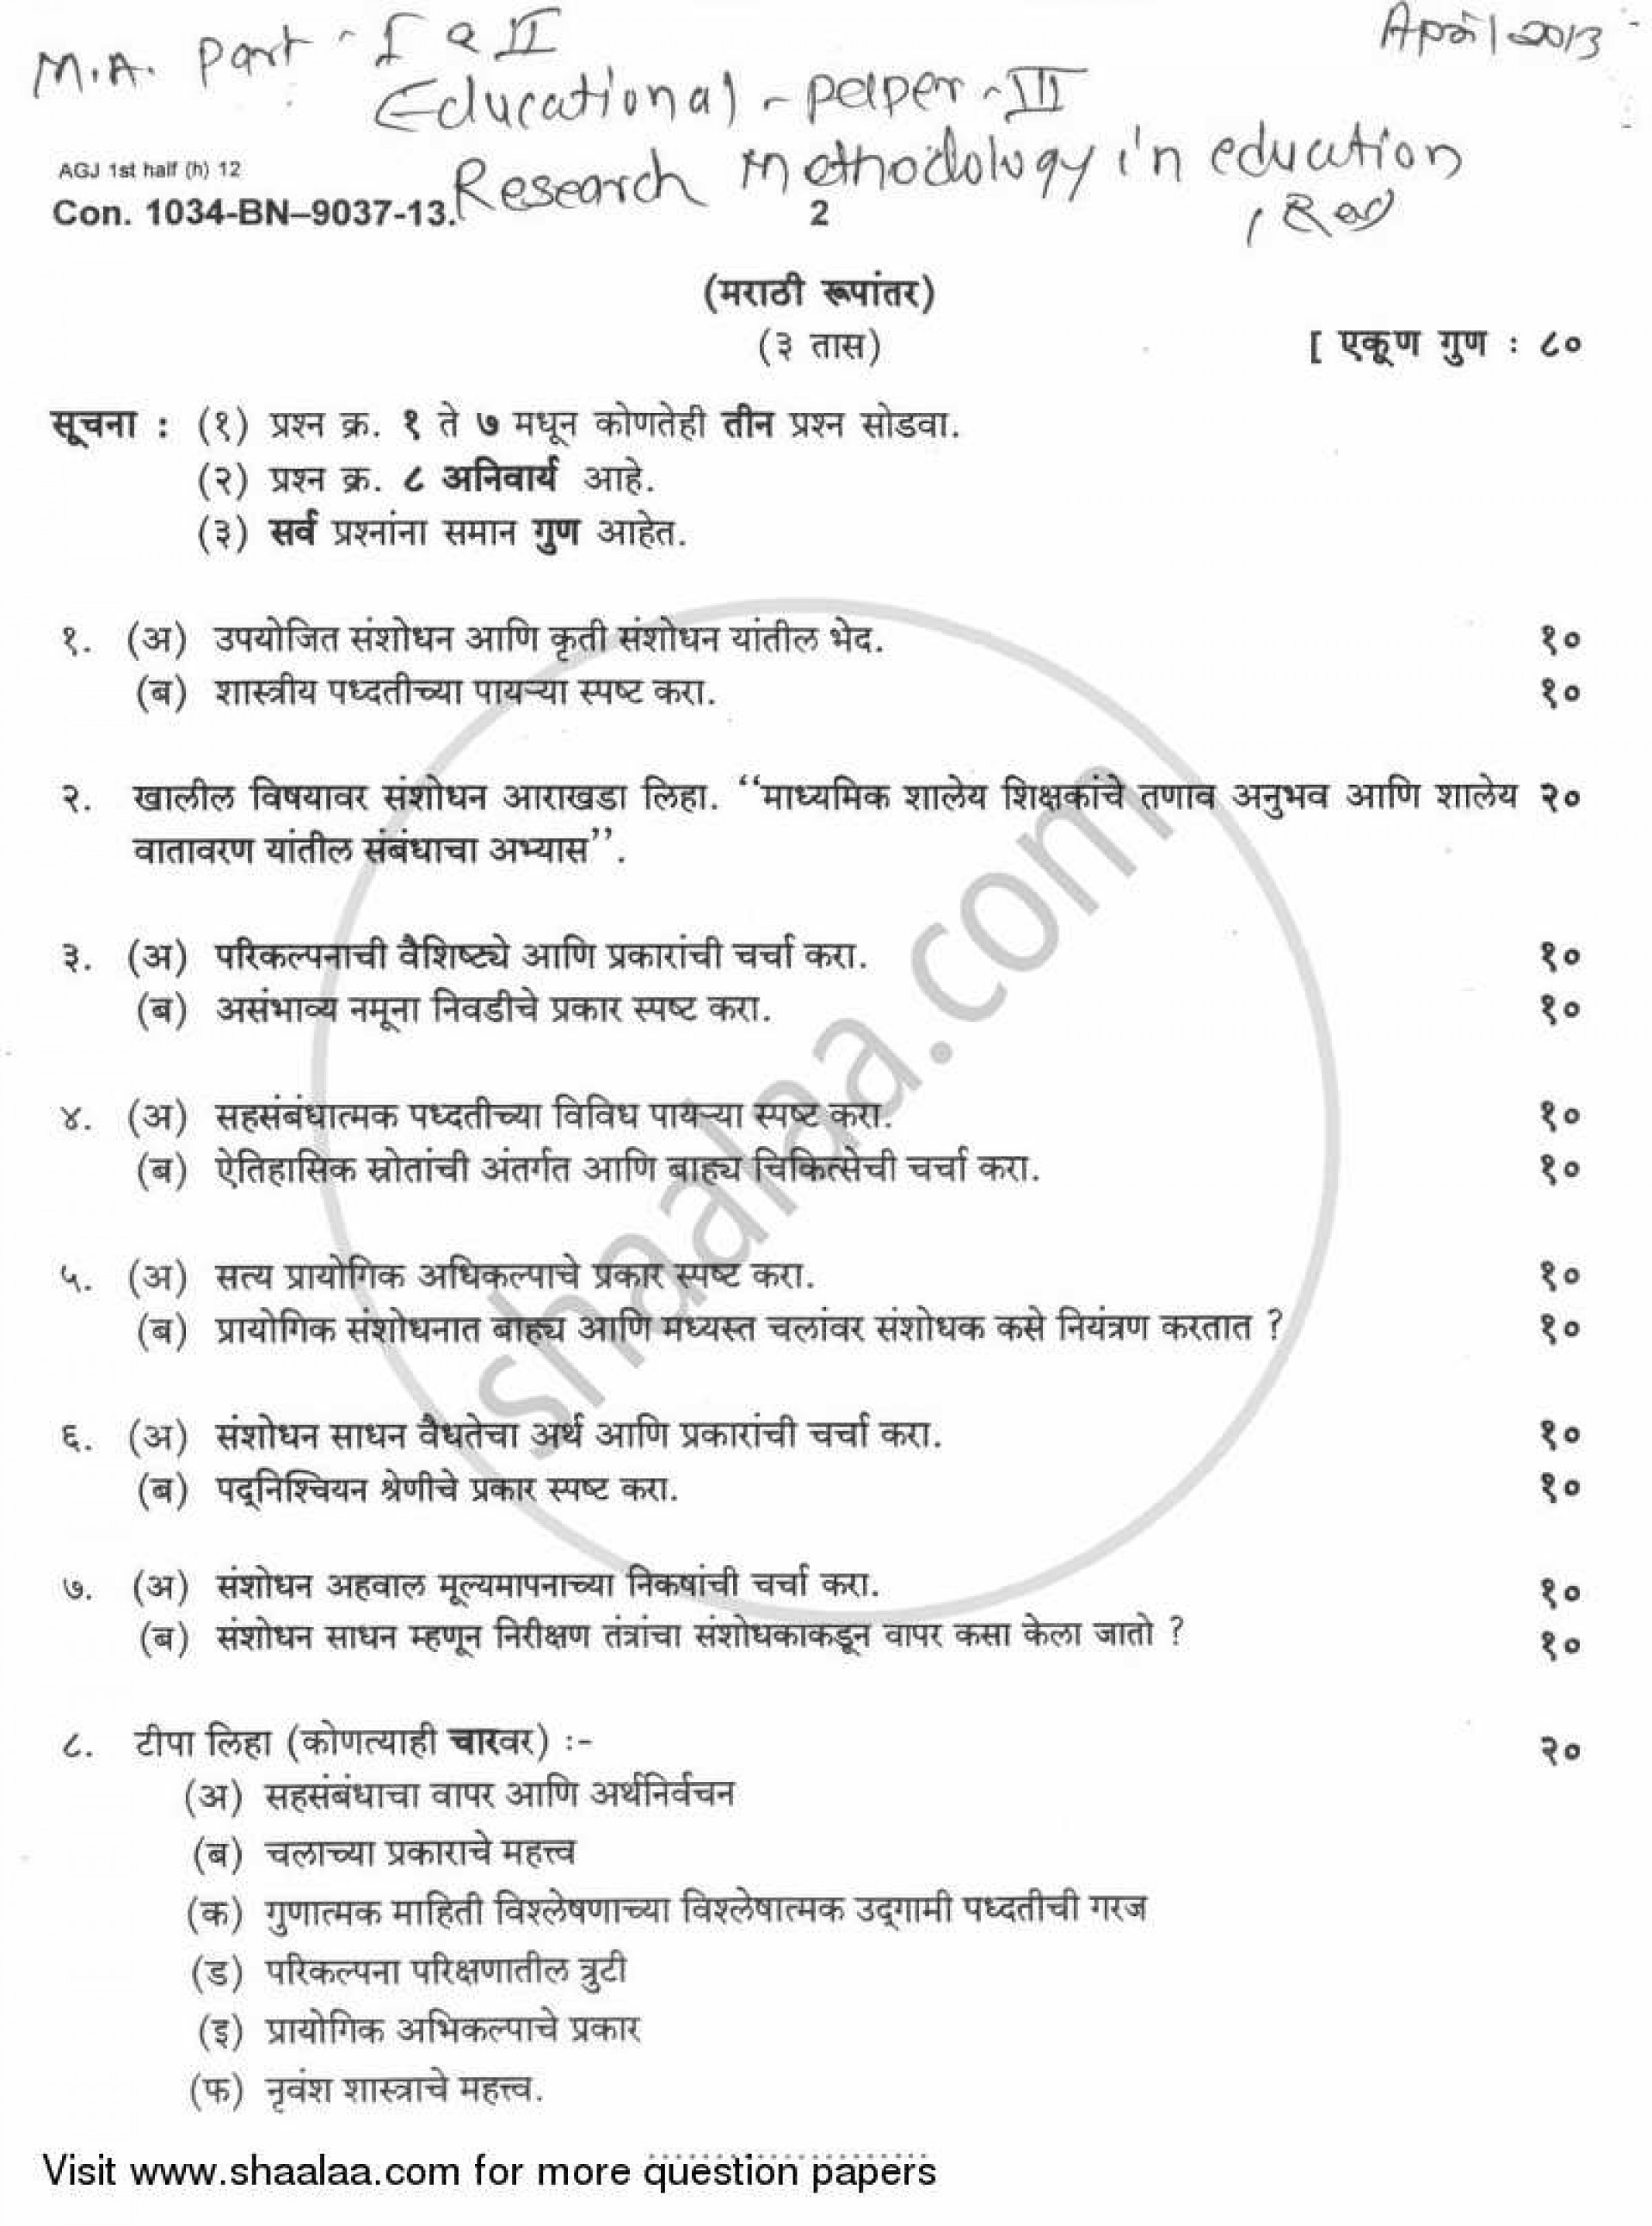 016 University Of Mumbai Master Ma Research Methodology Education Yearly Pattern Part 2012 2773731d8b9ed4a82aab006785367985a Paper Example Beautiful In Pdf Ppt Science 1920